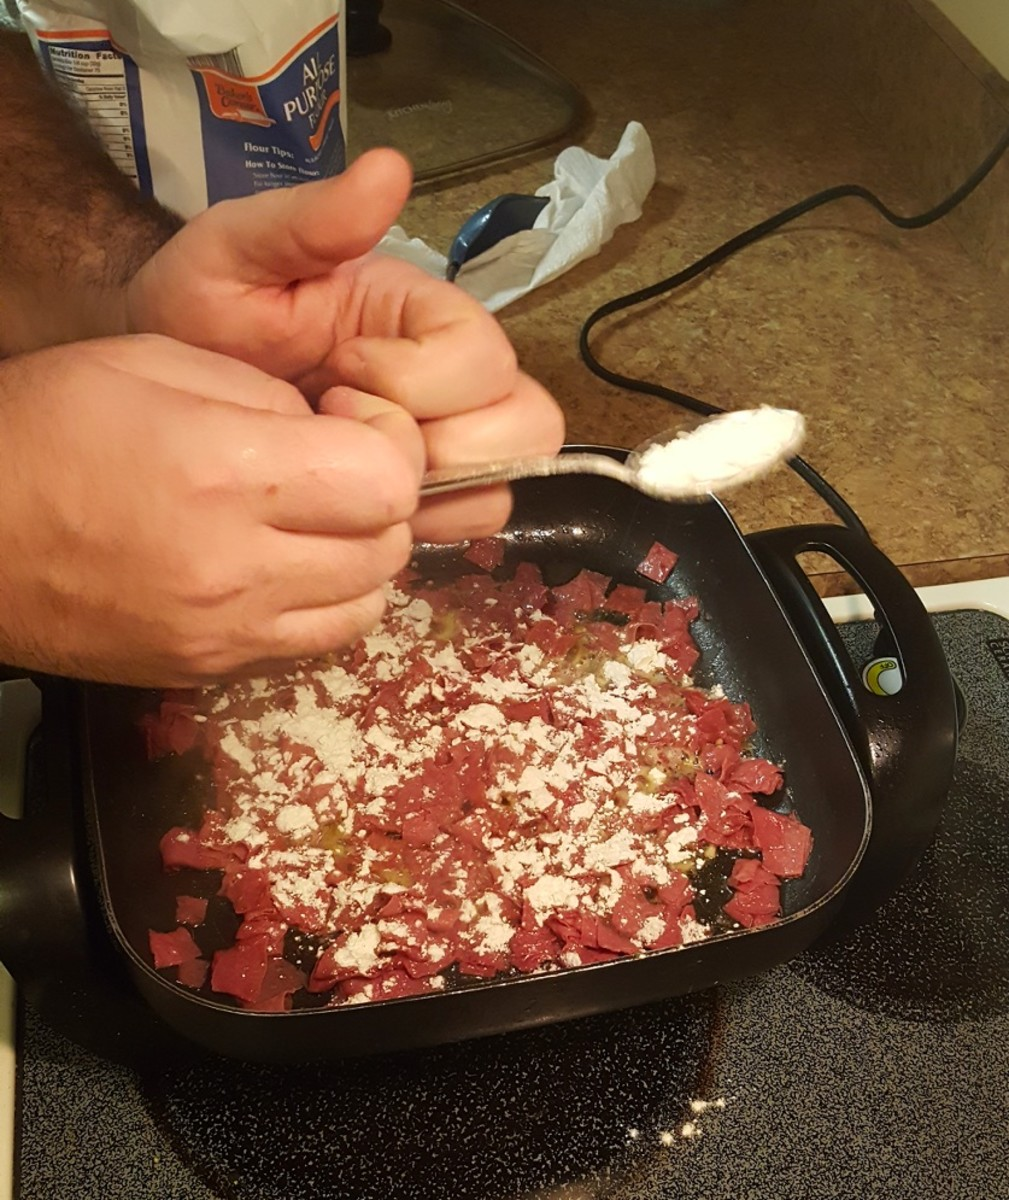 Gently tap a tablespoon to sprinkle flour on top of beef.